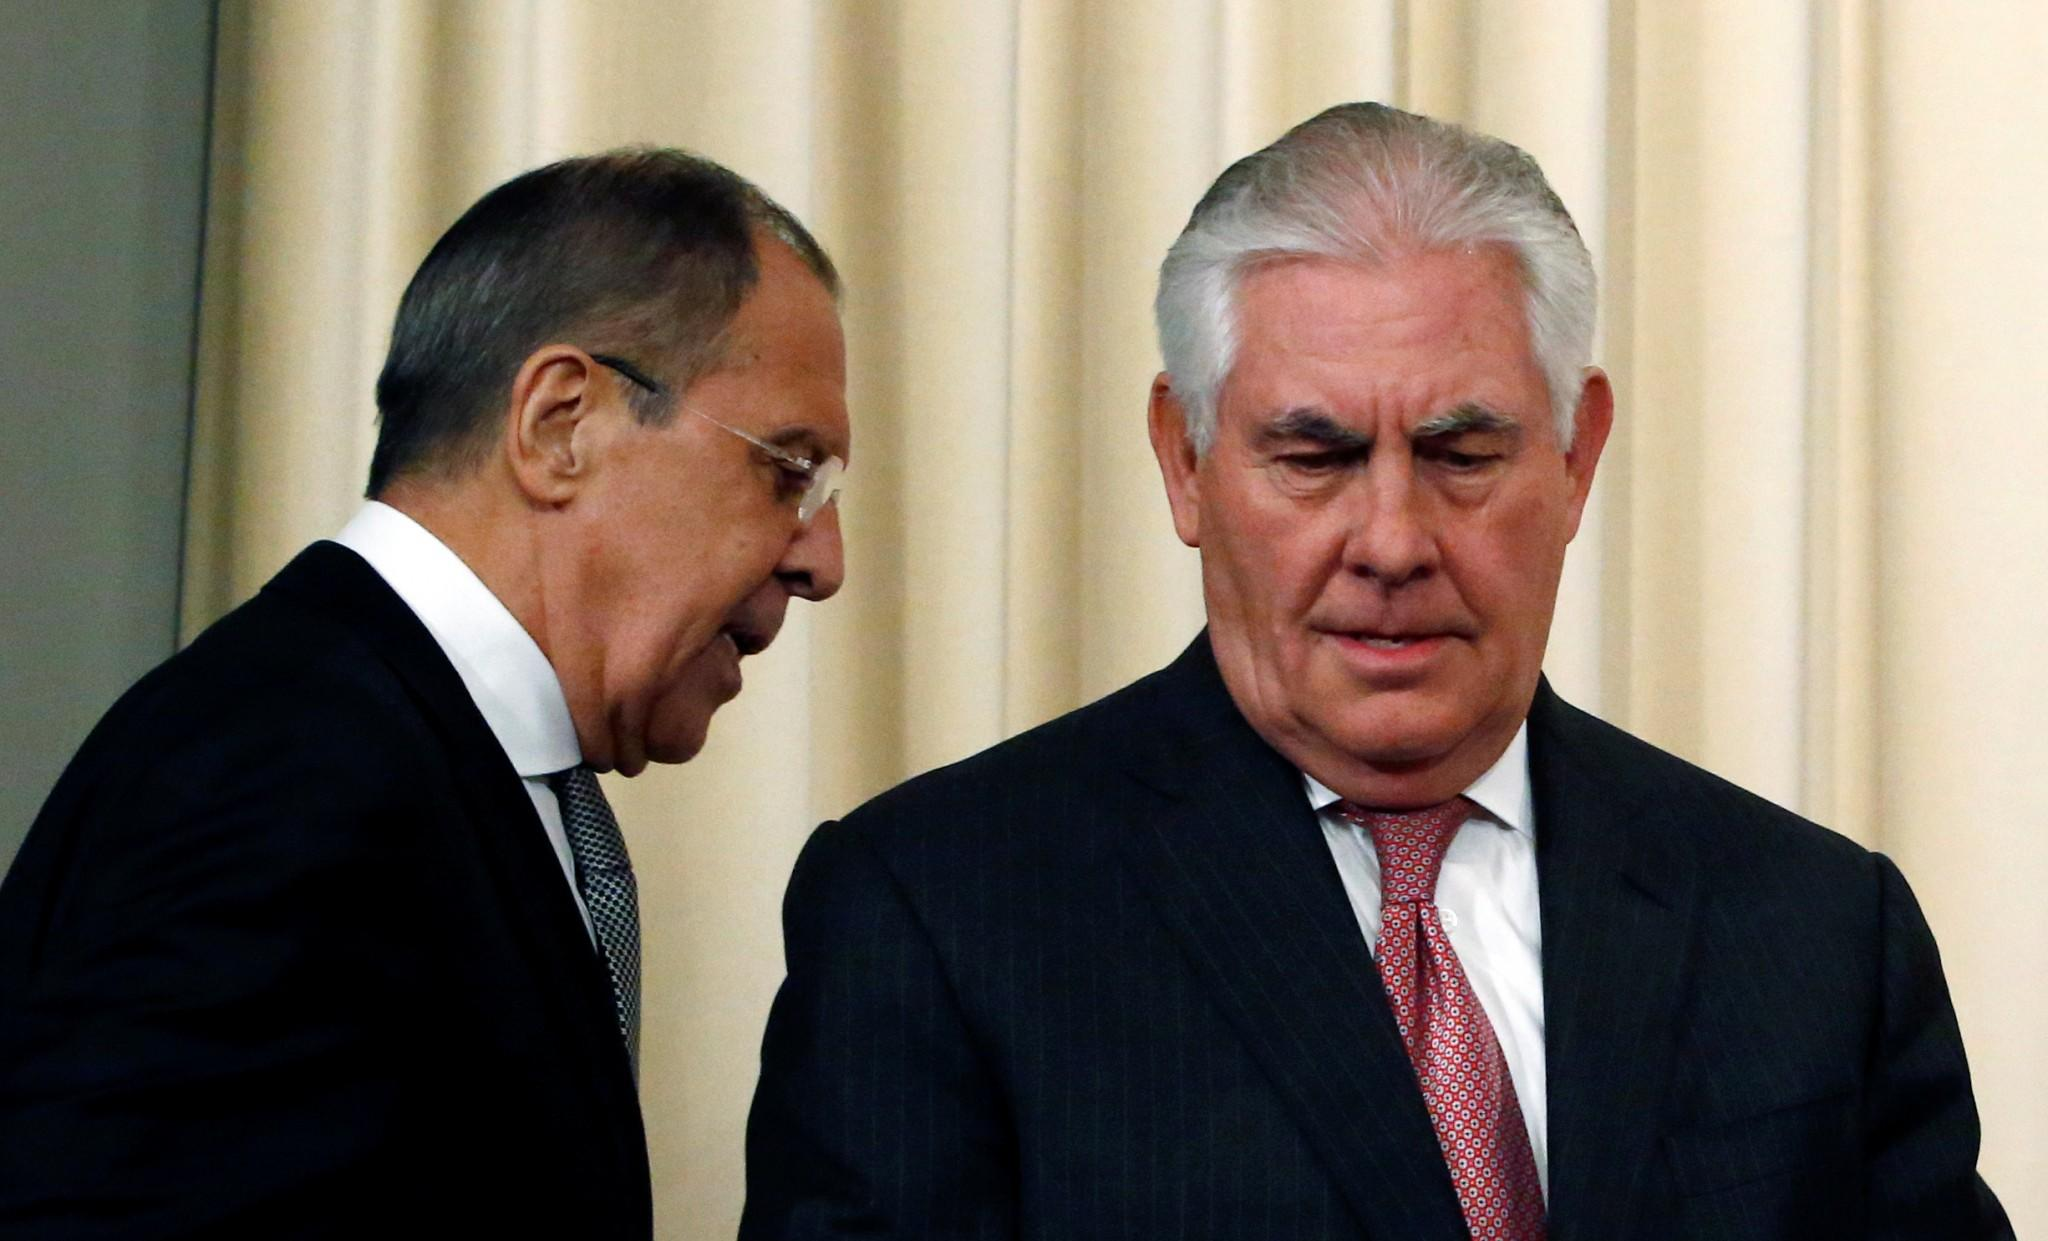 Russian Foreign Minister Sergei Lavrov and U.S. Secretary of State Rex Tillerson following talks in Moscow, April 12, 2017